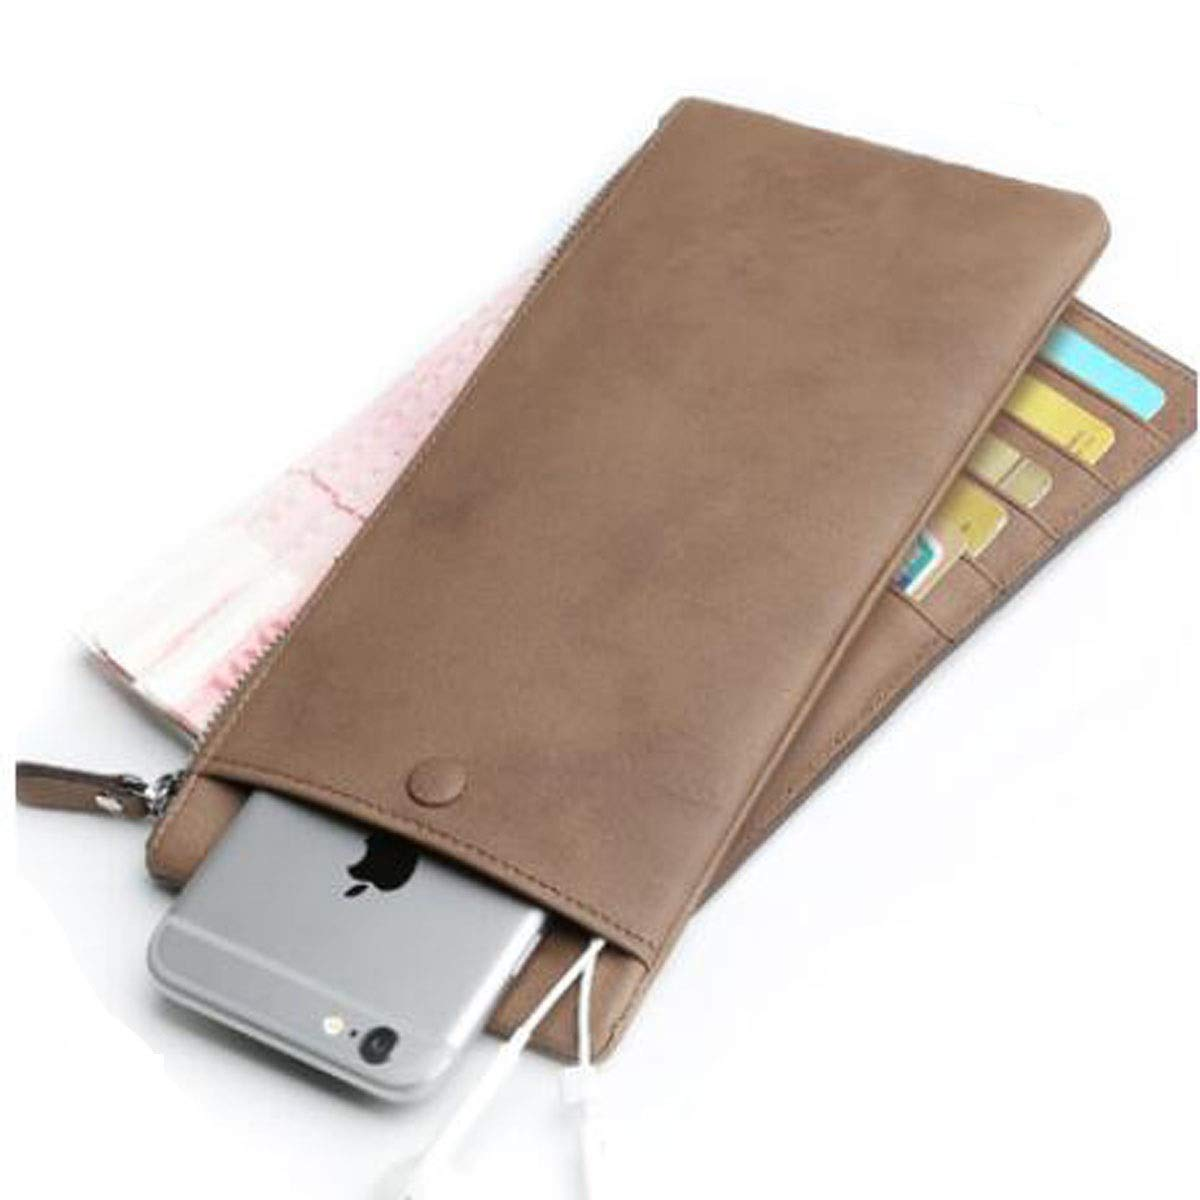 Black Outdoor Business Travel Fashion Student Youth Carrying Leather Wallet cm Stealth Mode Blocking Leather W Suitable for Mens Long Section Size, Color 20 0.5 10 Kalmar RFID Travel Wallet